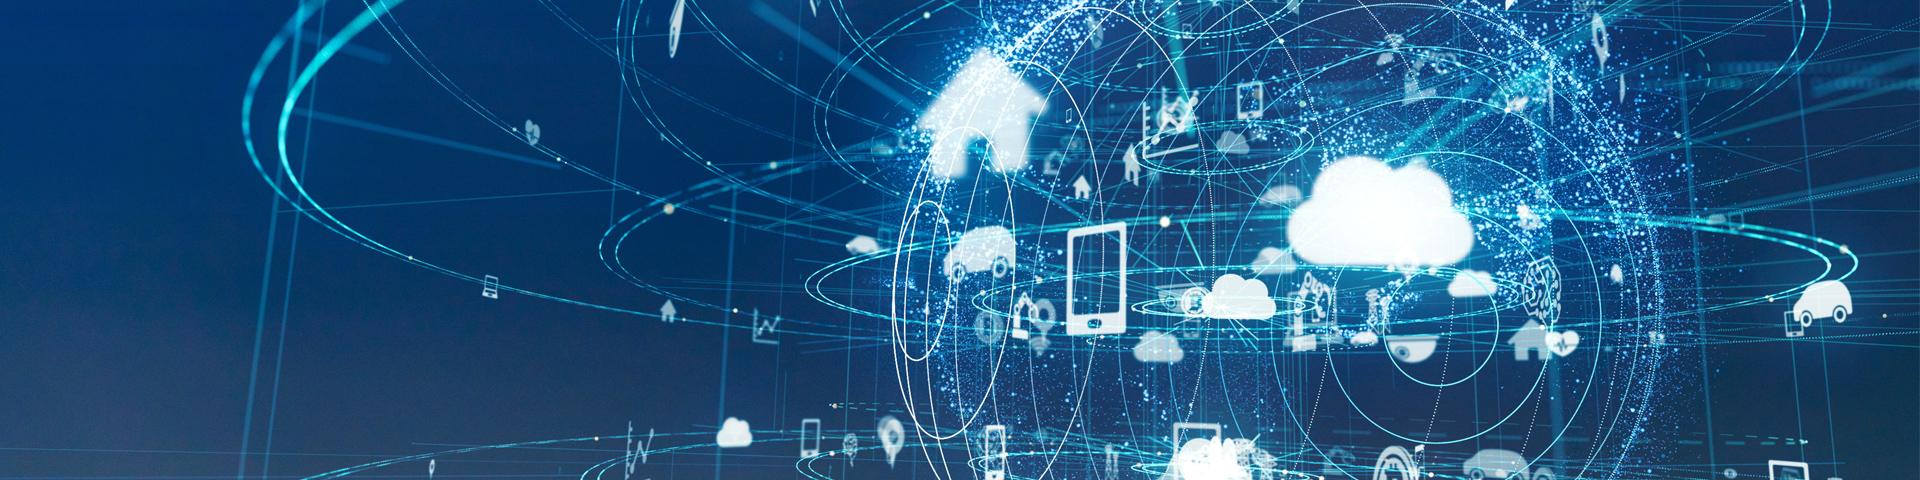 Ushering in a new era for the modern world with IoT technology